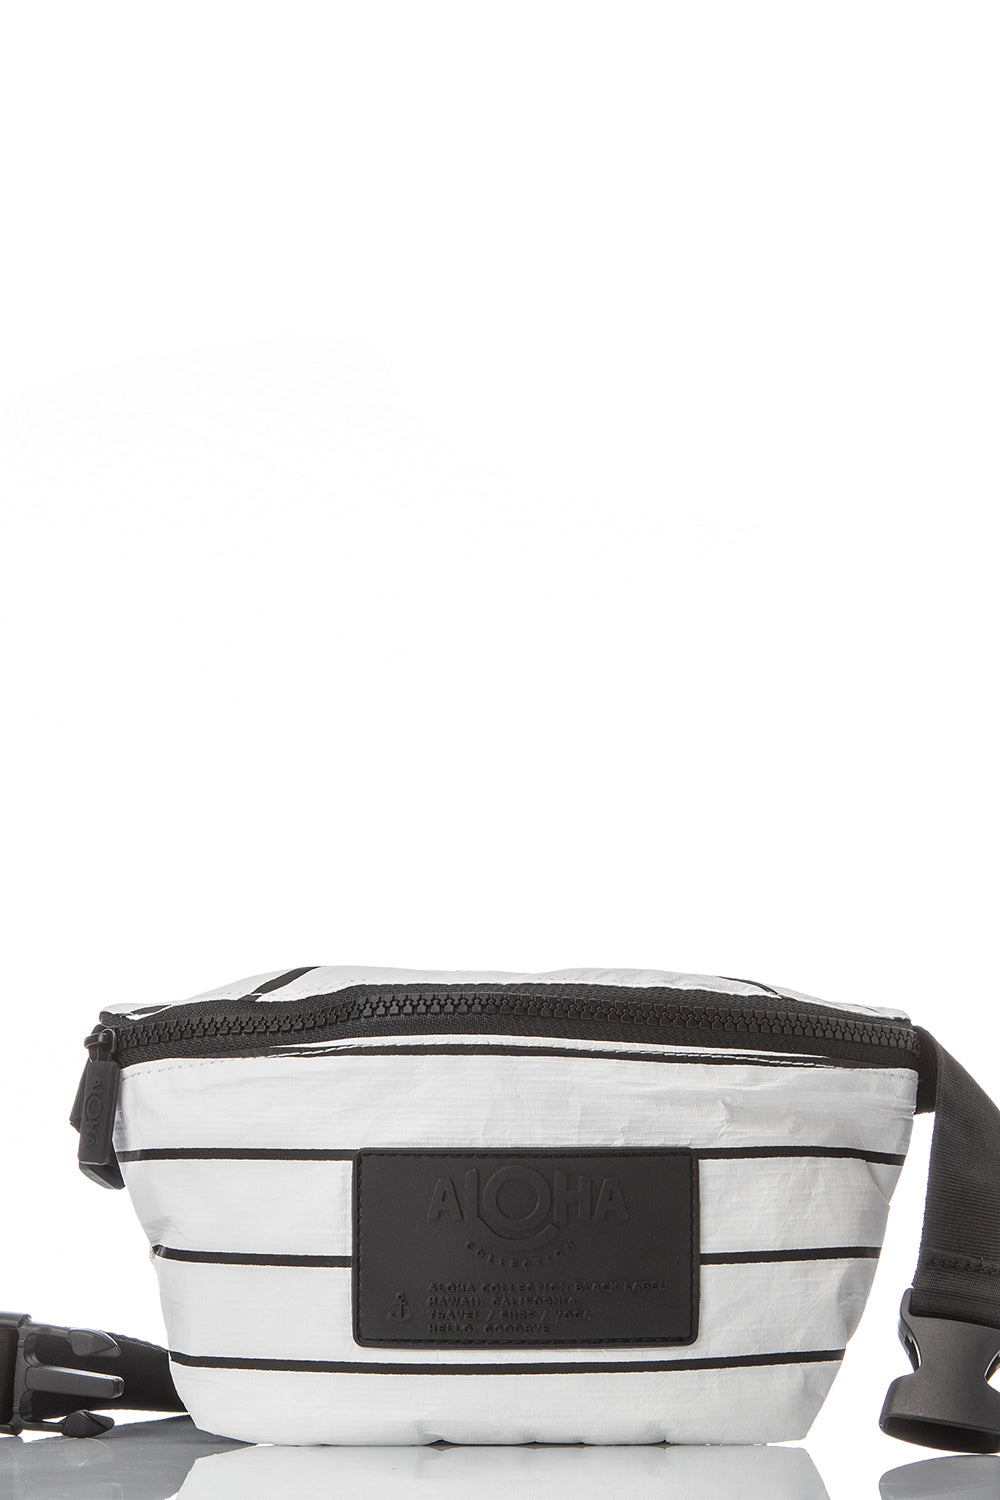 ALOHA Collection Mini Hip Pack in Black Pinstripe on White